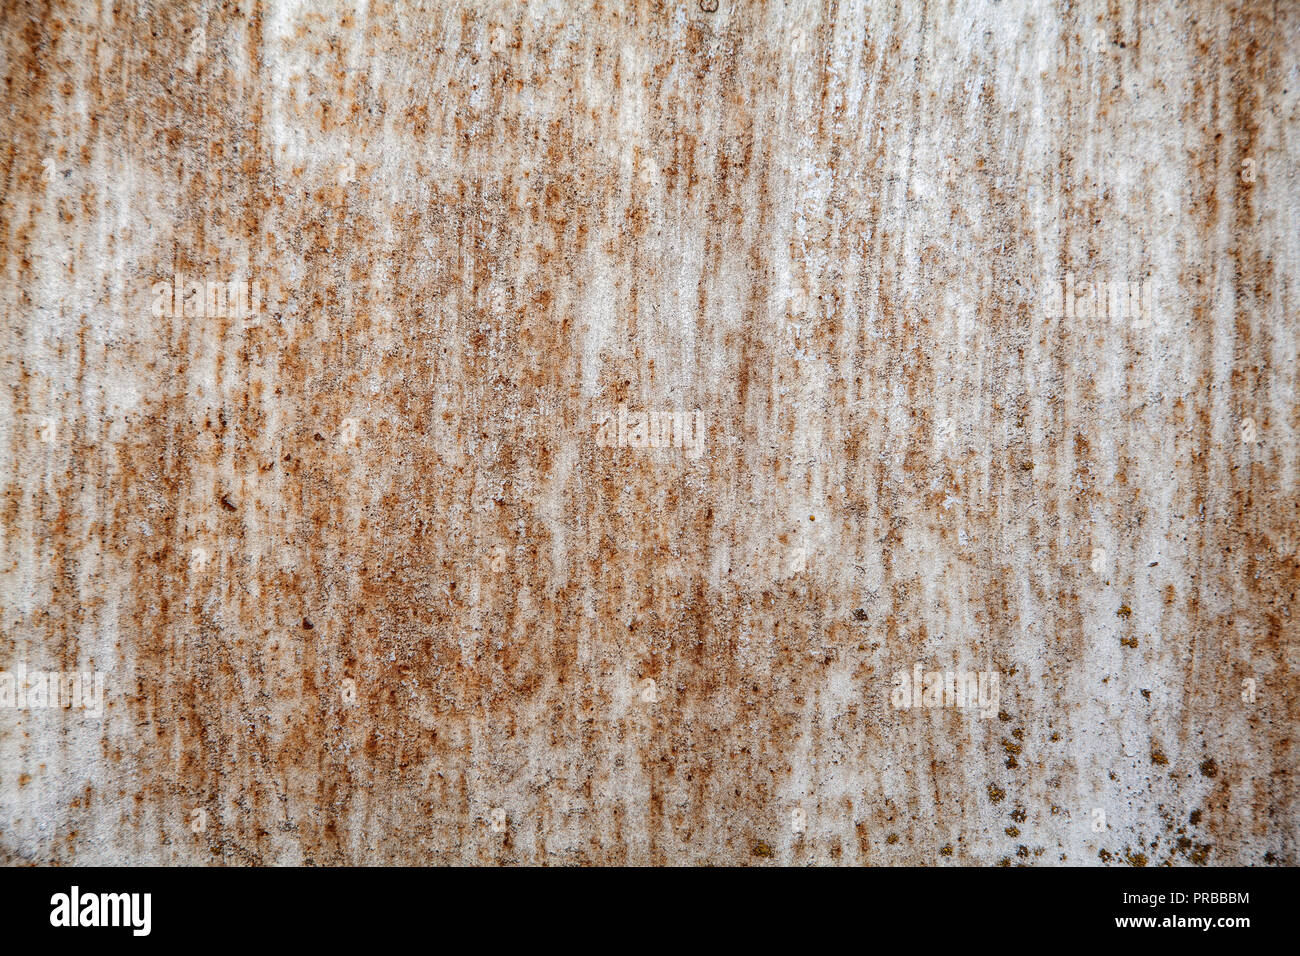 Surface Of Rusty Iron With Remnants Of Old Paint, Chipped ...